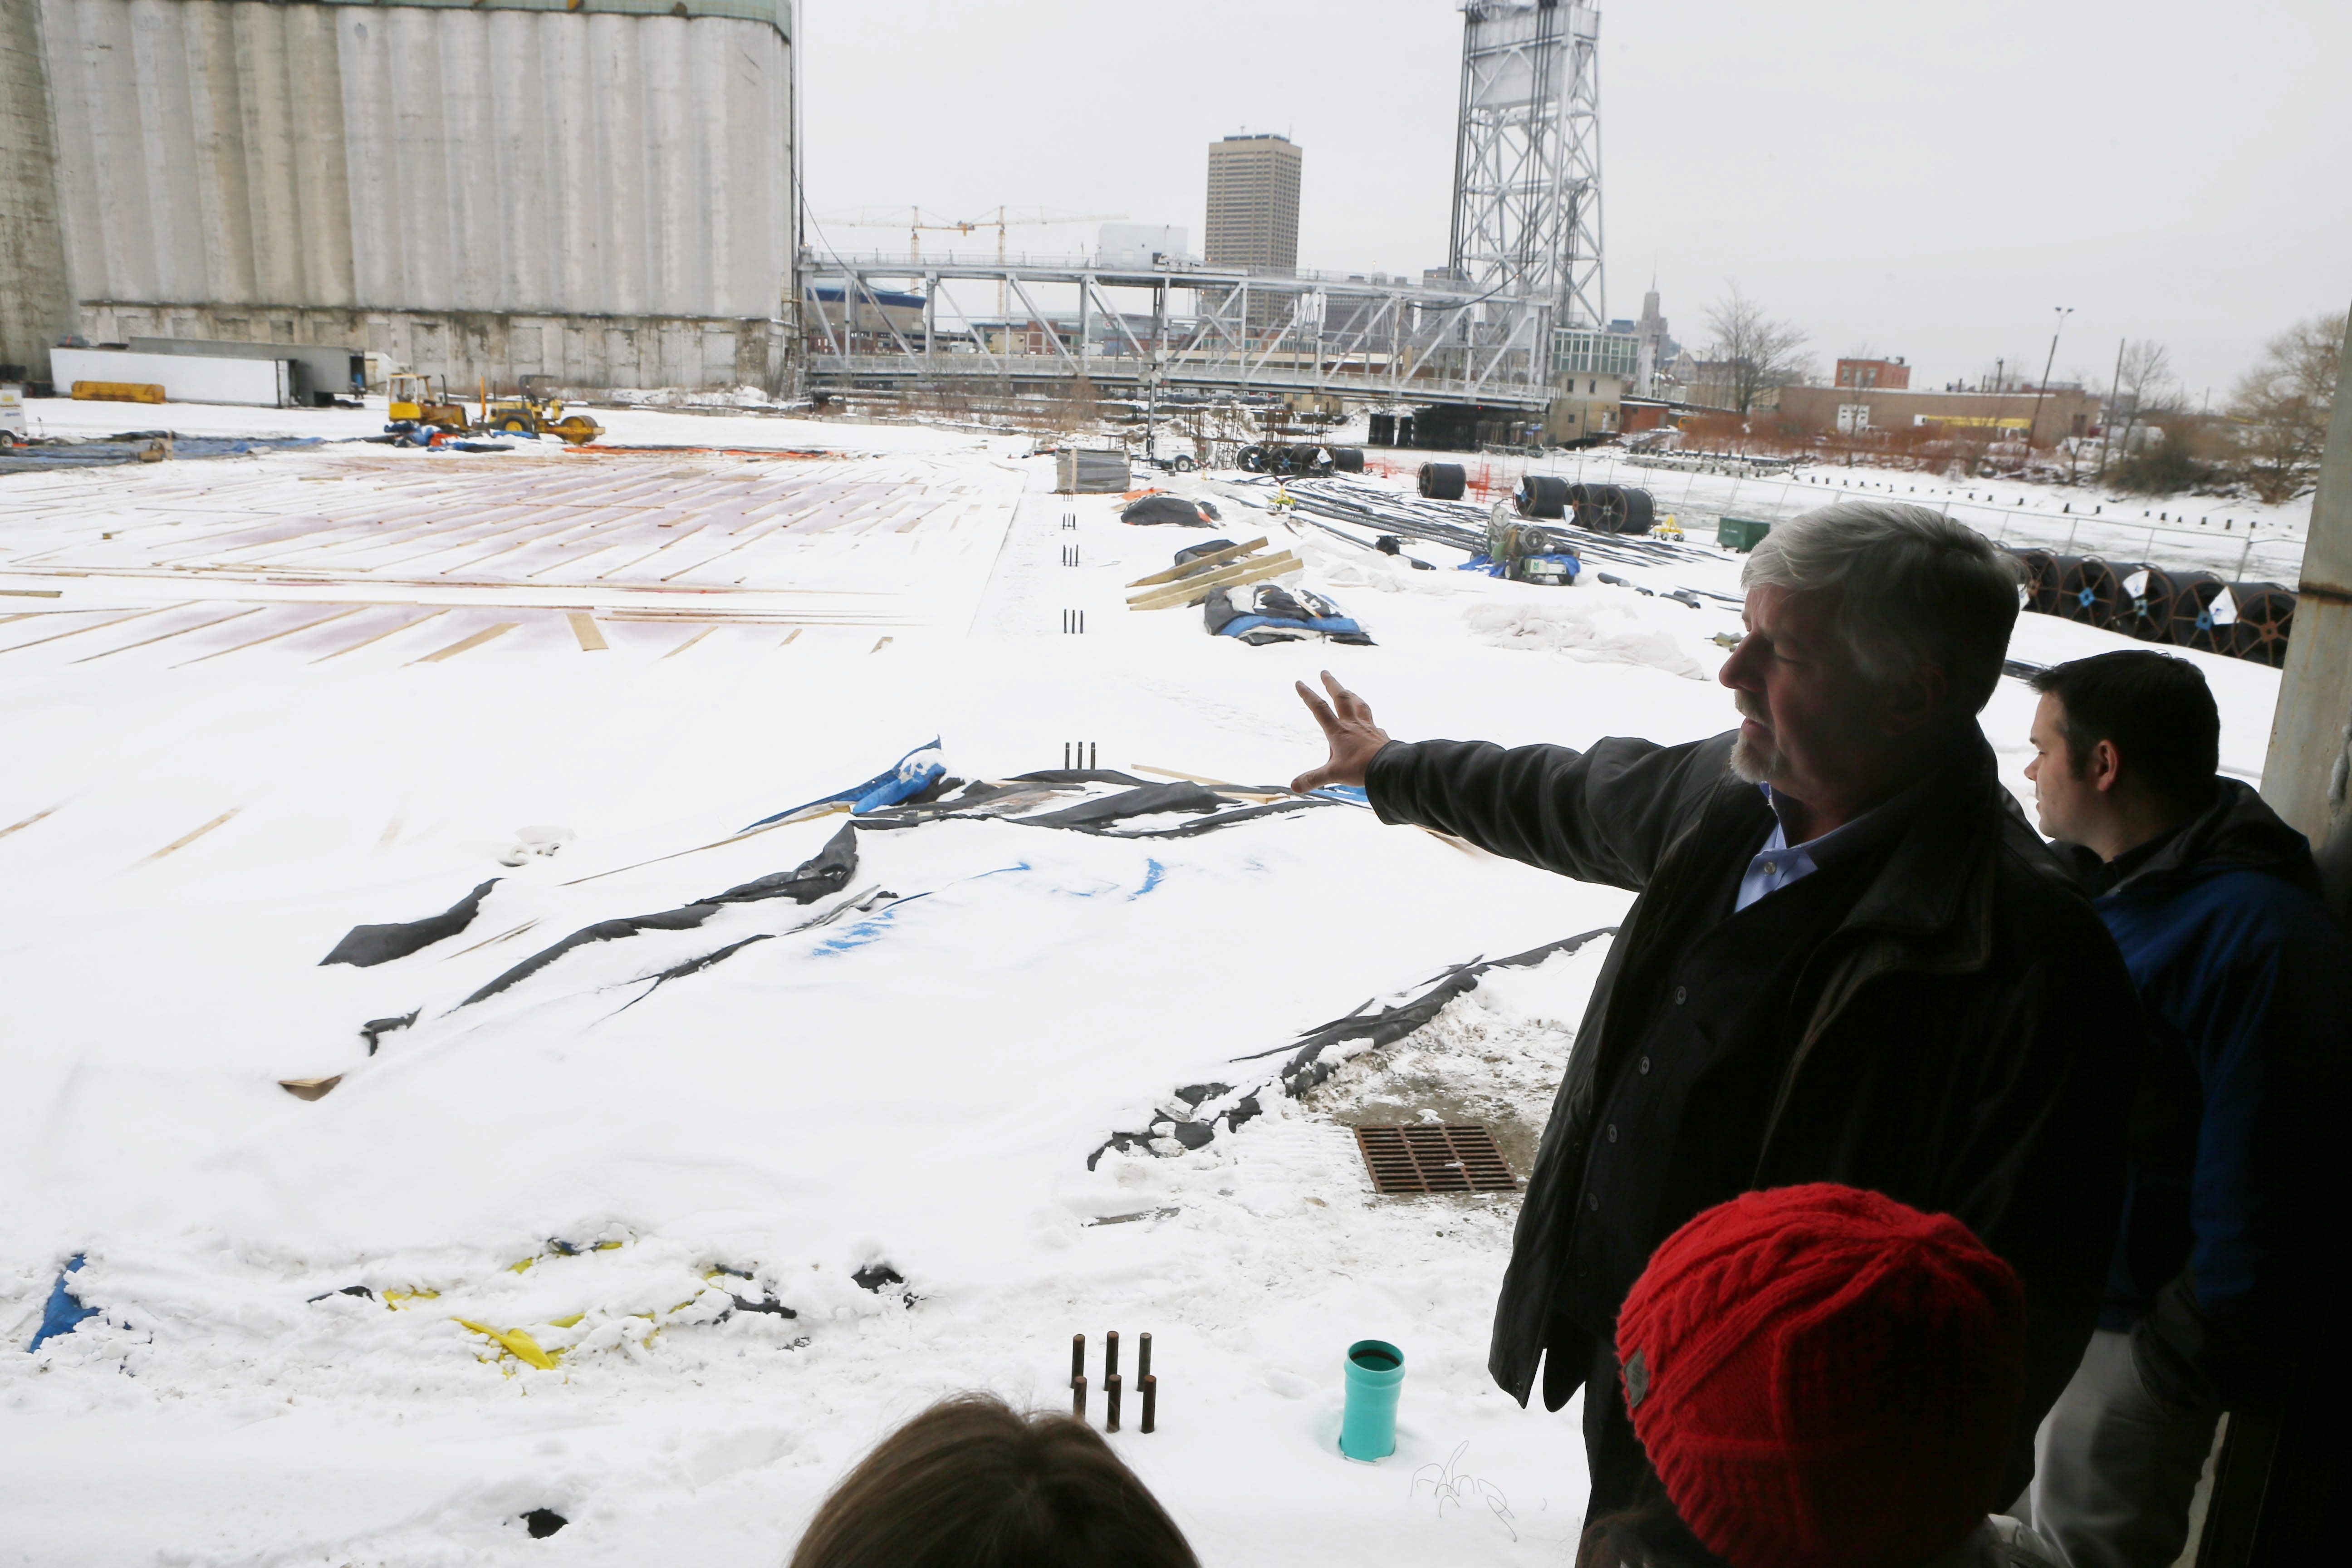 Developer Doug Swift gives a tour of the Buffalo RiverWorks site to organizers of the Labatt Blue Pond Hockey Tournament on Friday.  The Common Council approved the refrigerated rinks, and the tournament is scheduled for Feb. 21-22.